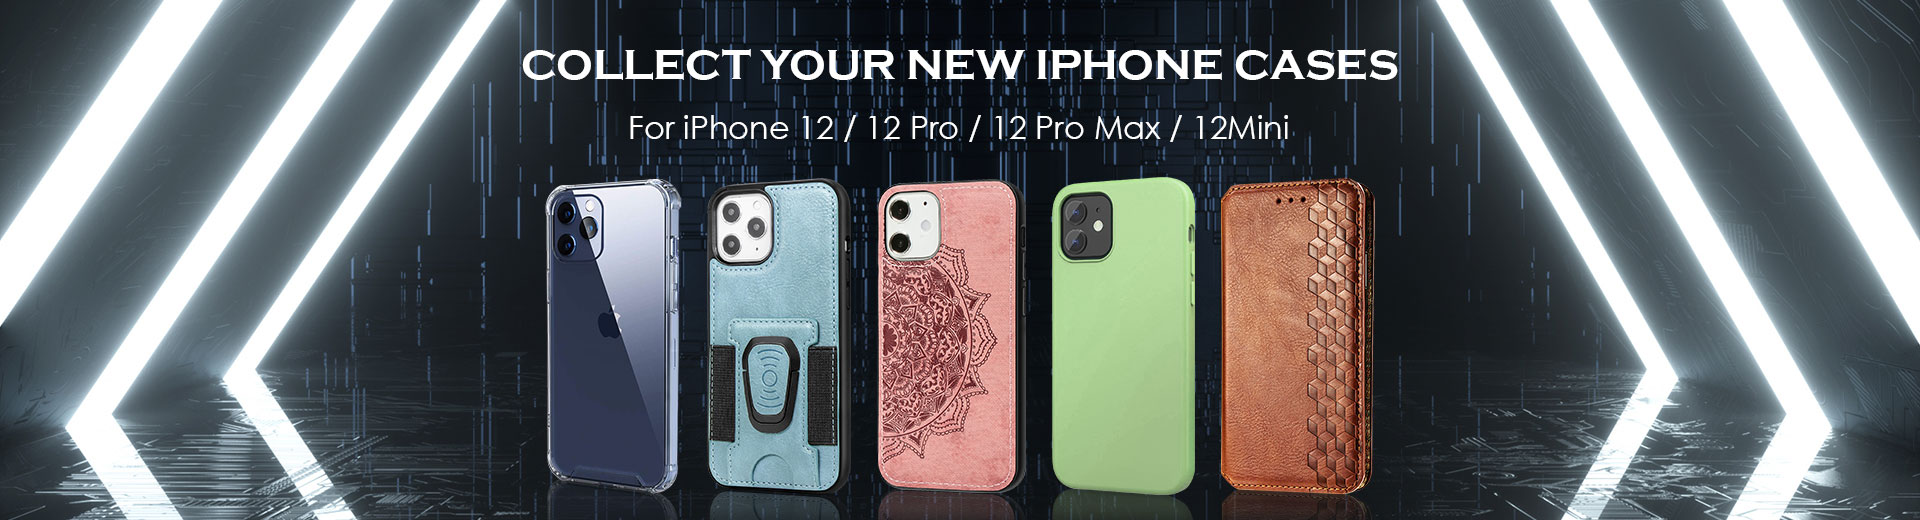 iPhone 12 Phone Cases